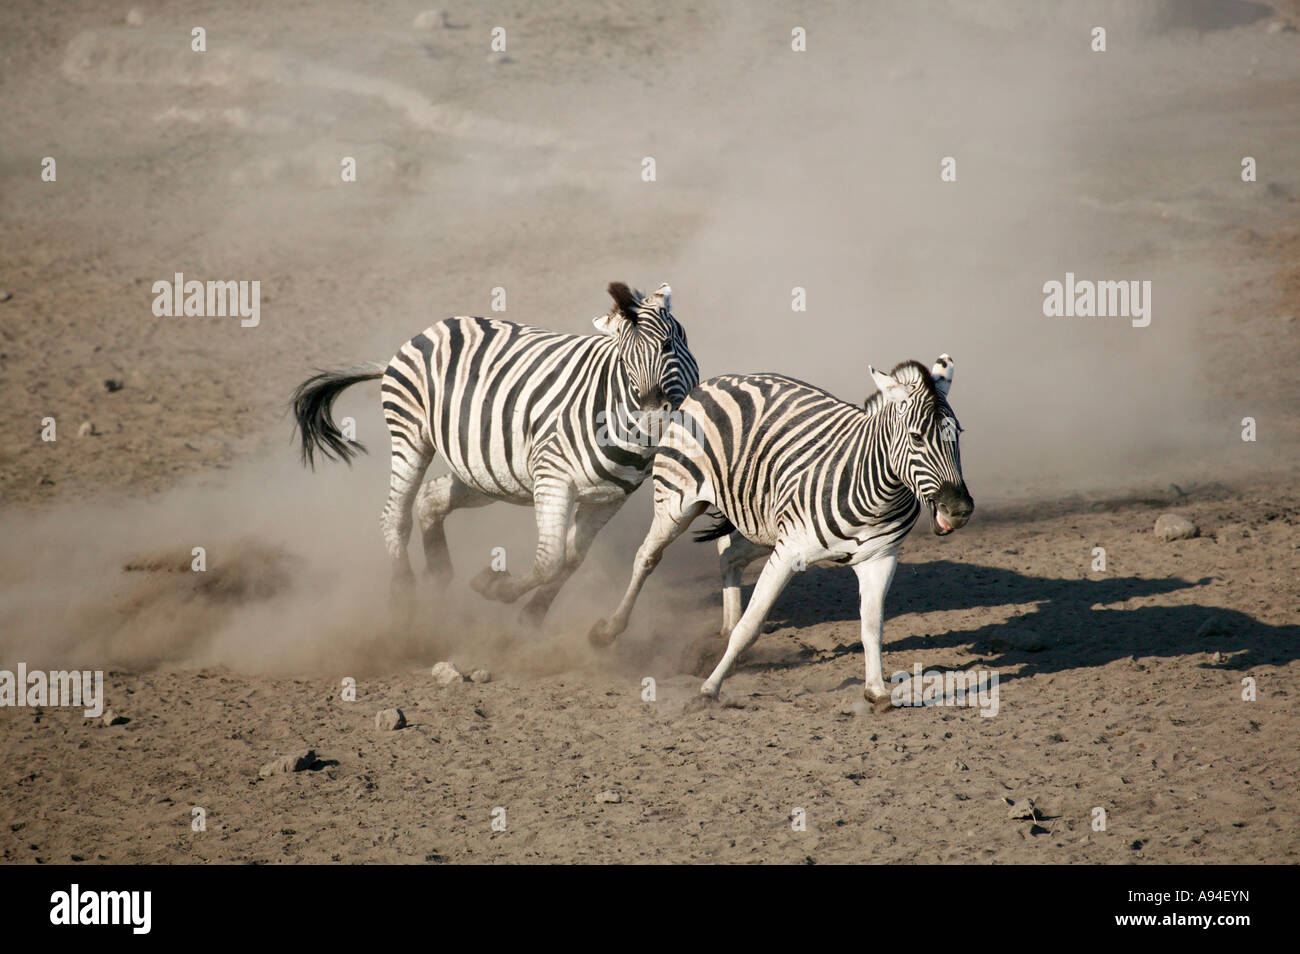 A Zebra kicking up dust as it chases a rival through a sandy area Etosha Namibia - Stock Image